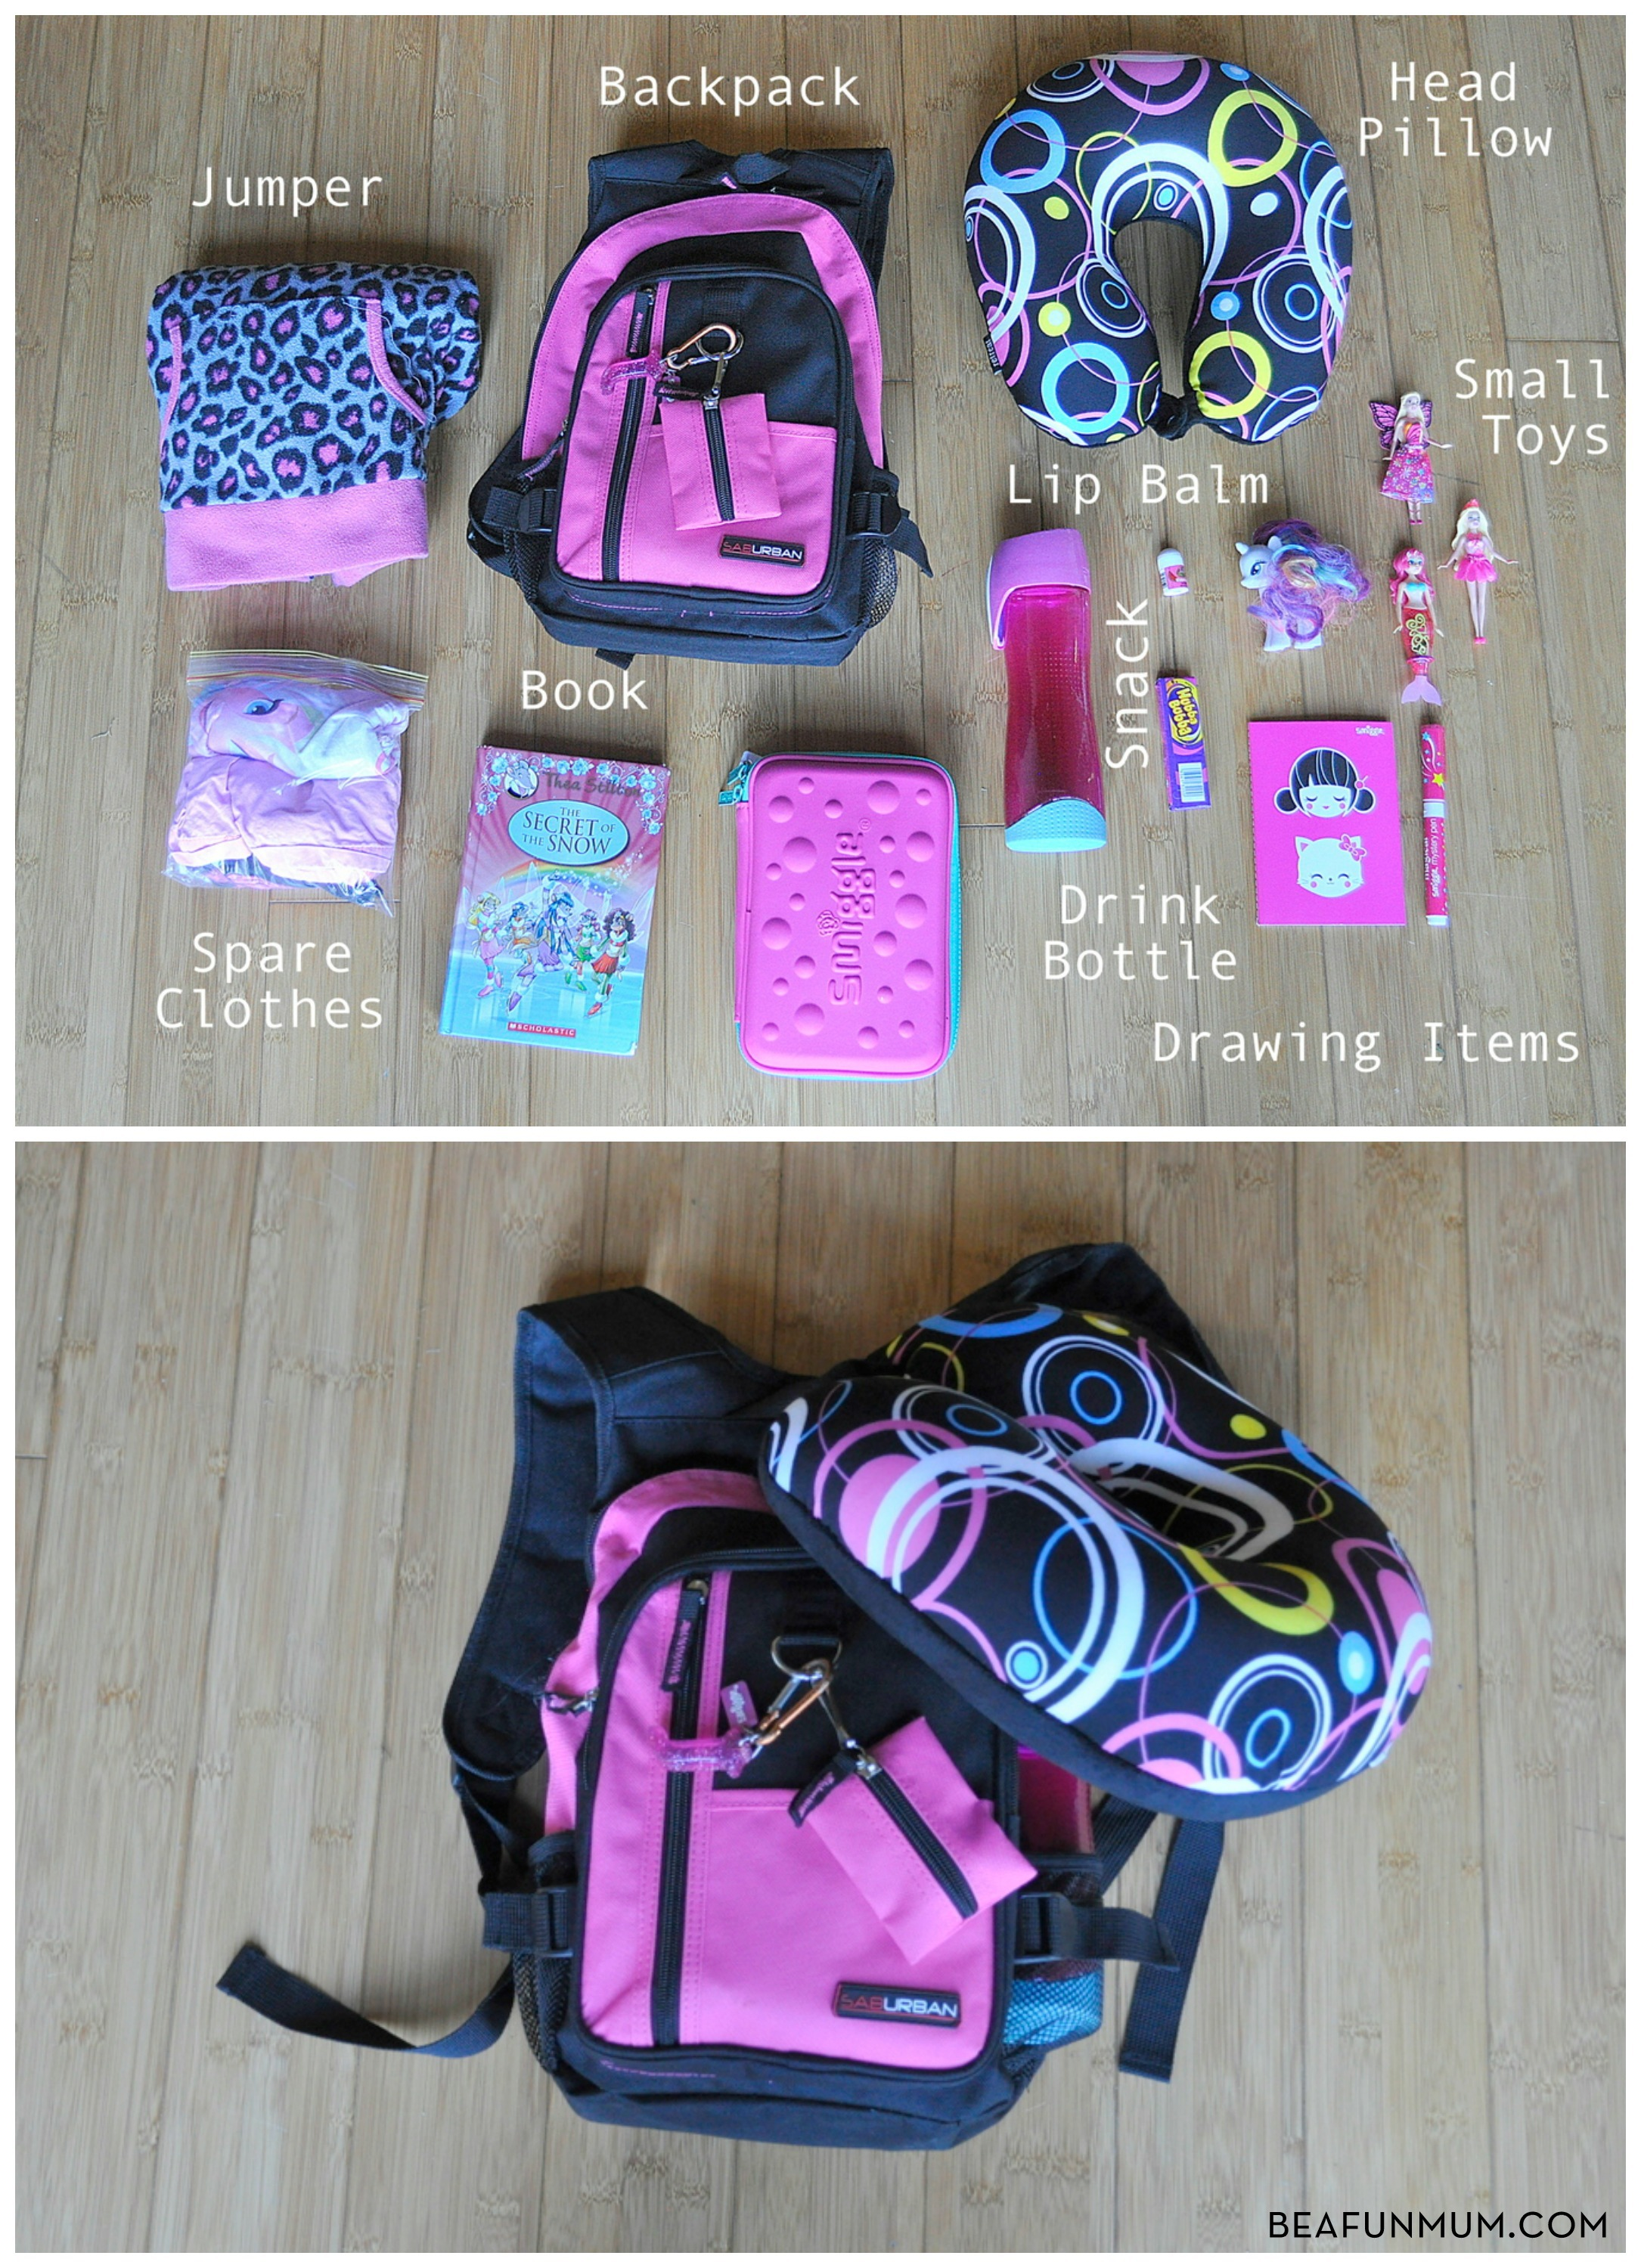 Plane Travel: Backpack for Kids | Be A Fun Mum